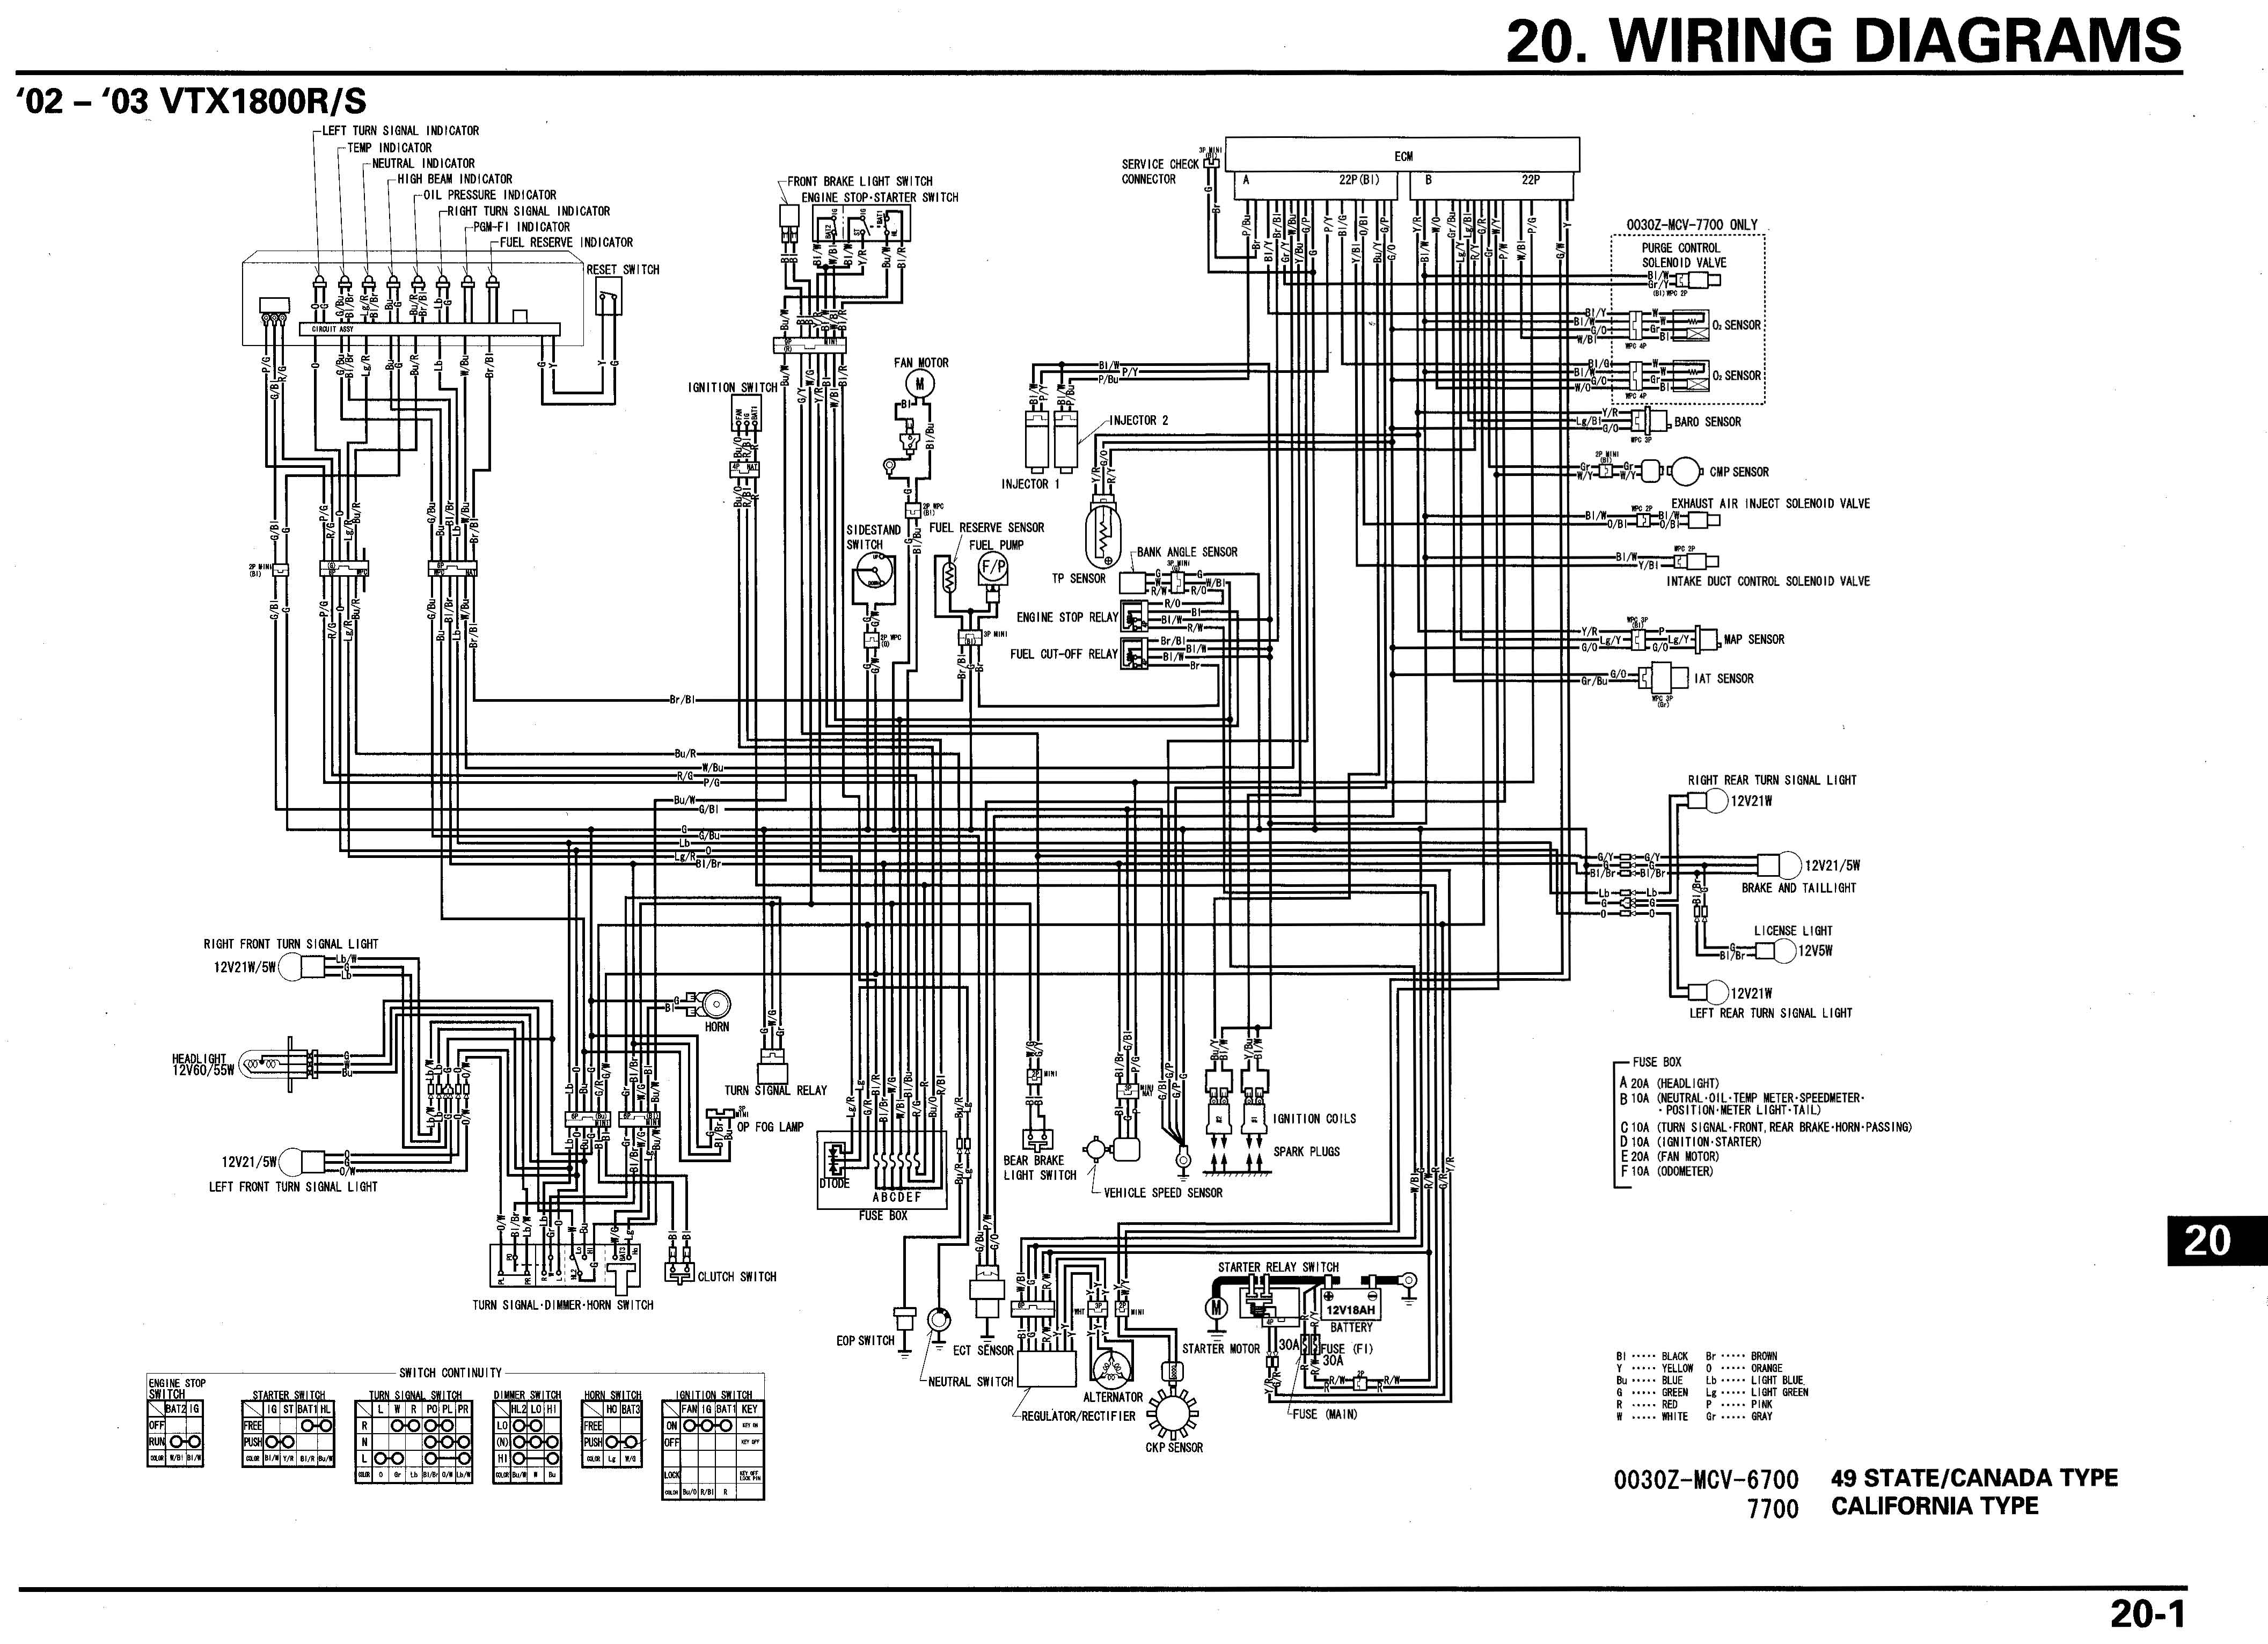 02 03_VTX1800_R S_schematic 2007 honda vtx 1300 wiring diagram 2007 wiring diagrams collection westlock 2007 wiring diagram at alyssarenee.co